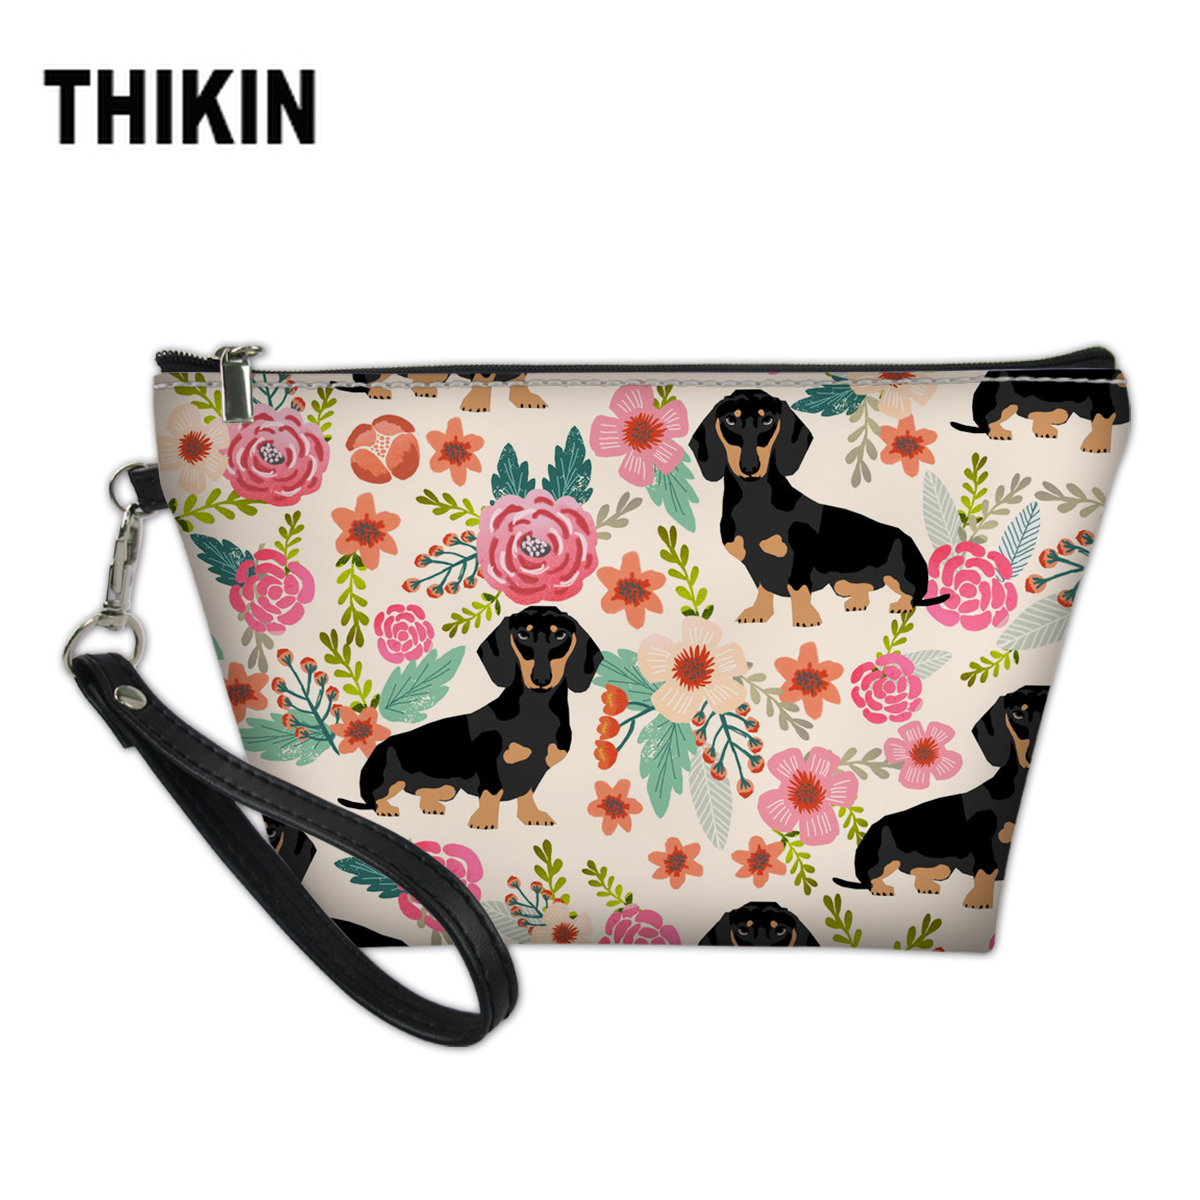 THIKIN Gardon Floral Dachshund Makeup Bag Cosmetic Cases Cute Sausage Dog Women Travel Beauty Organizer Cosmetic Storage Box